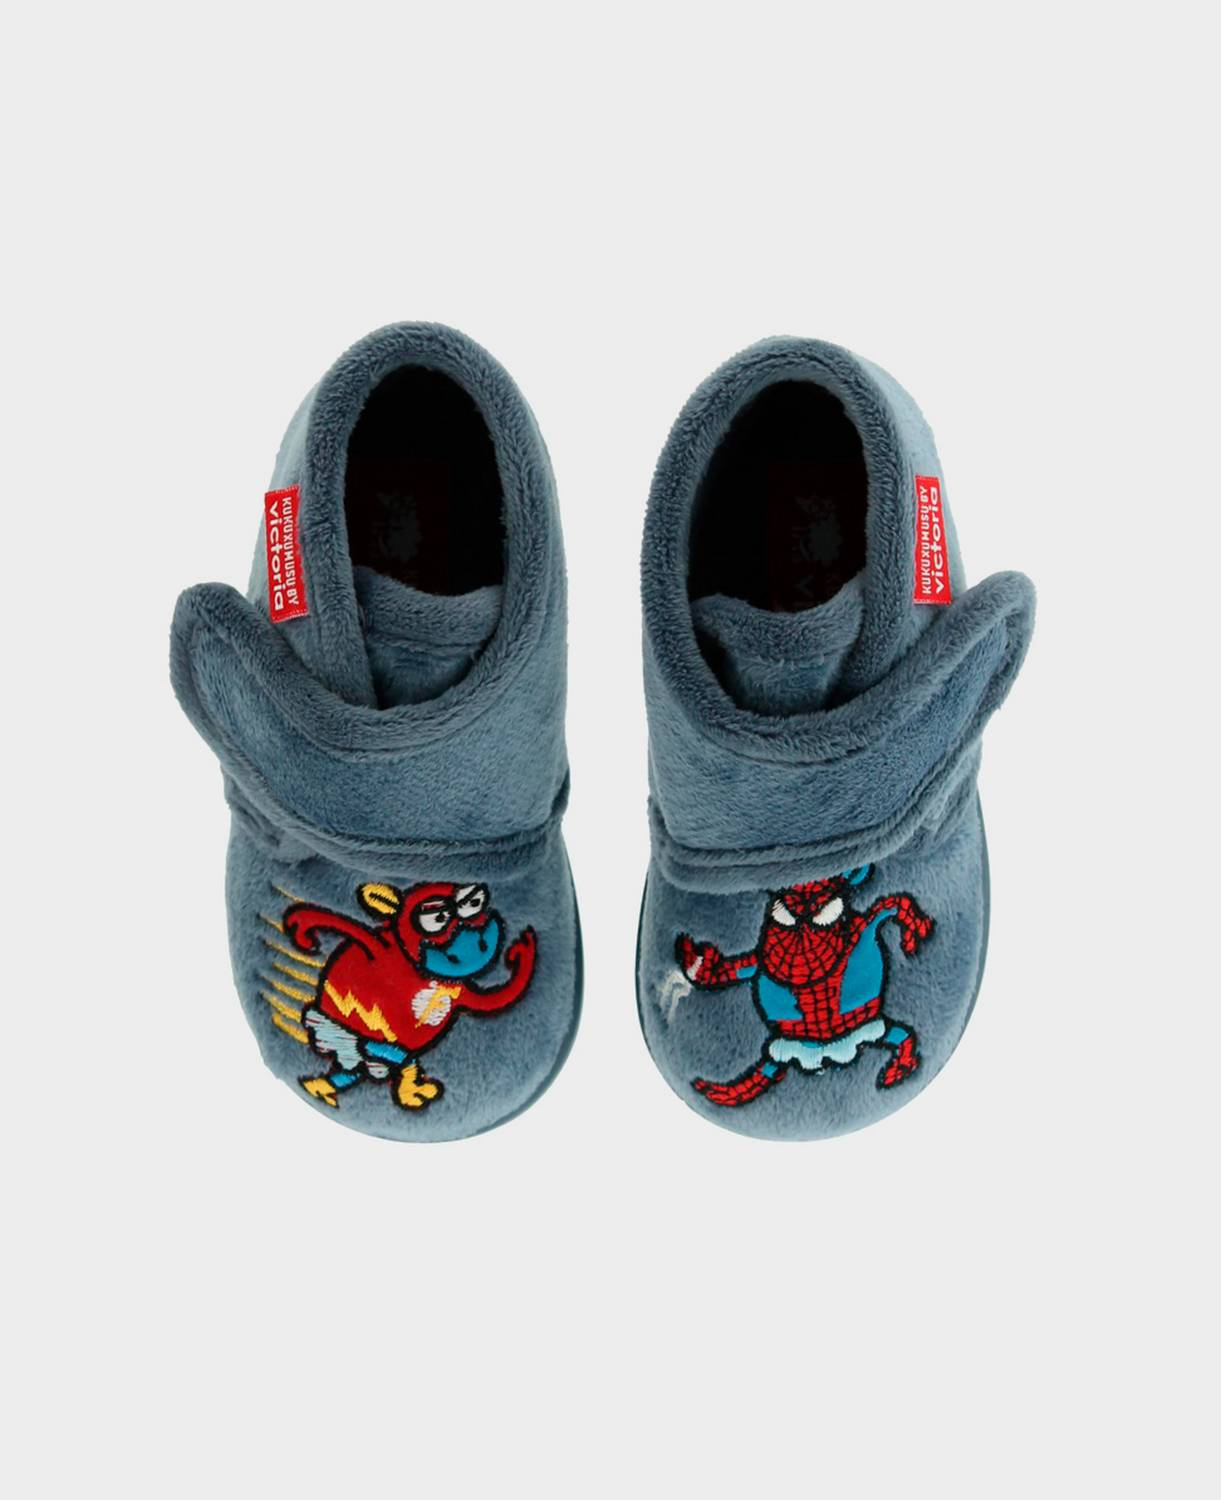 Zapatillas de casa infantiles Supersheep Spiderfla